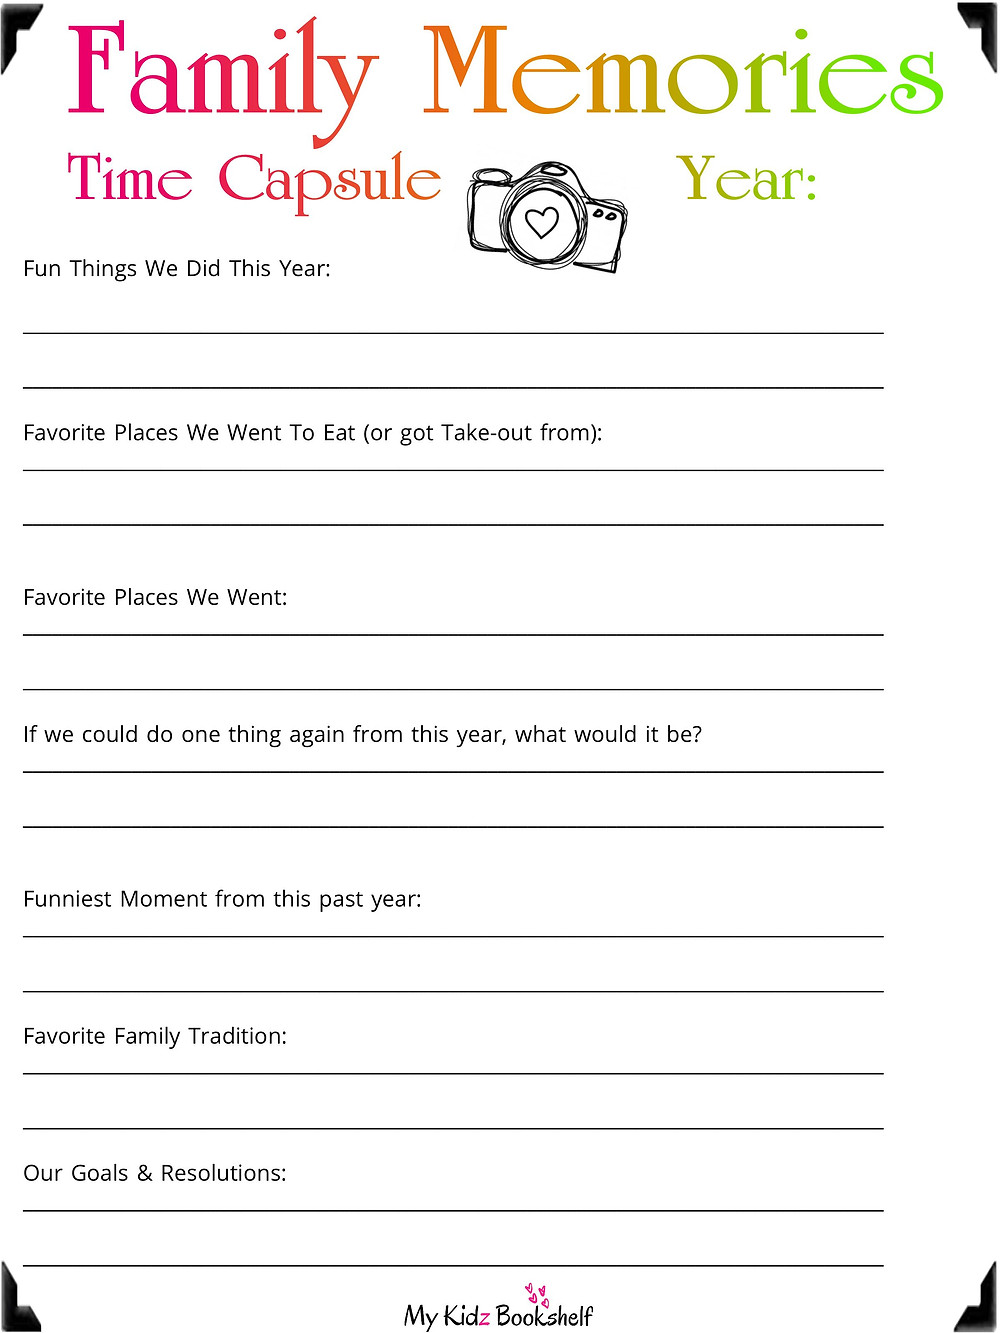 Family-Memories-Time-Capsule-fill-out-family-questions